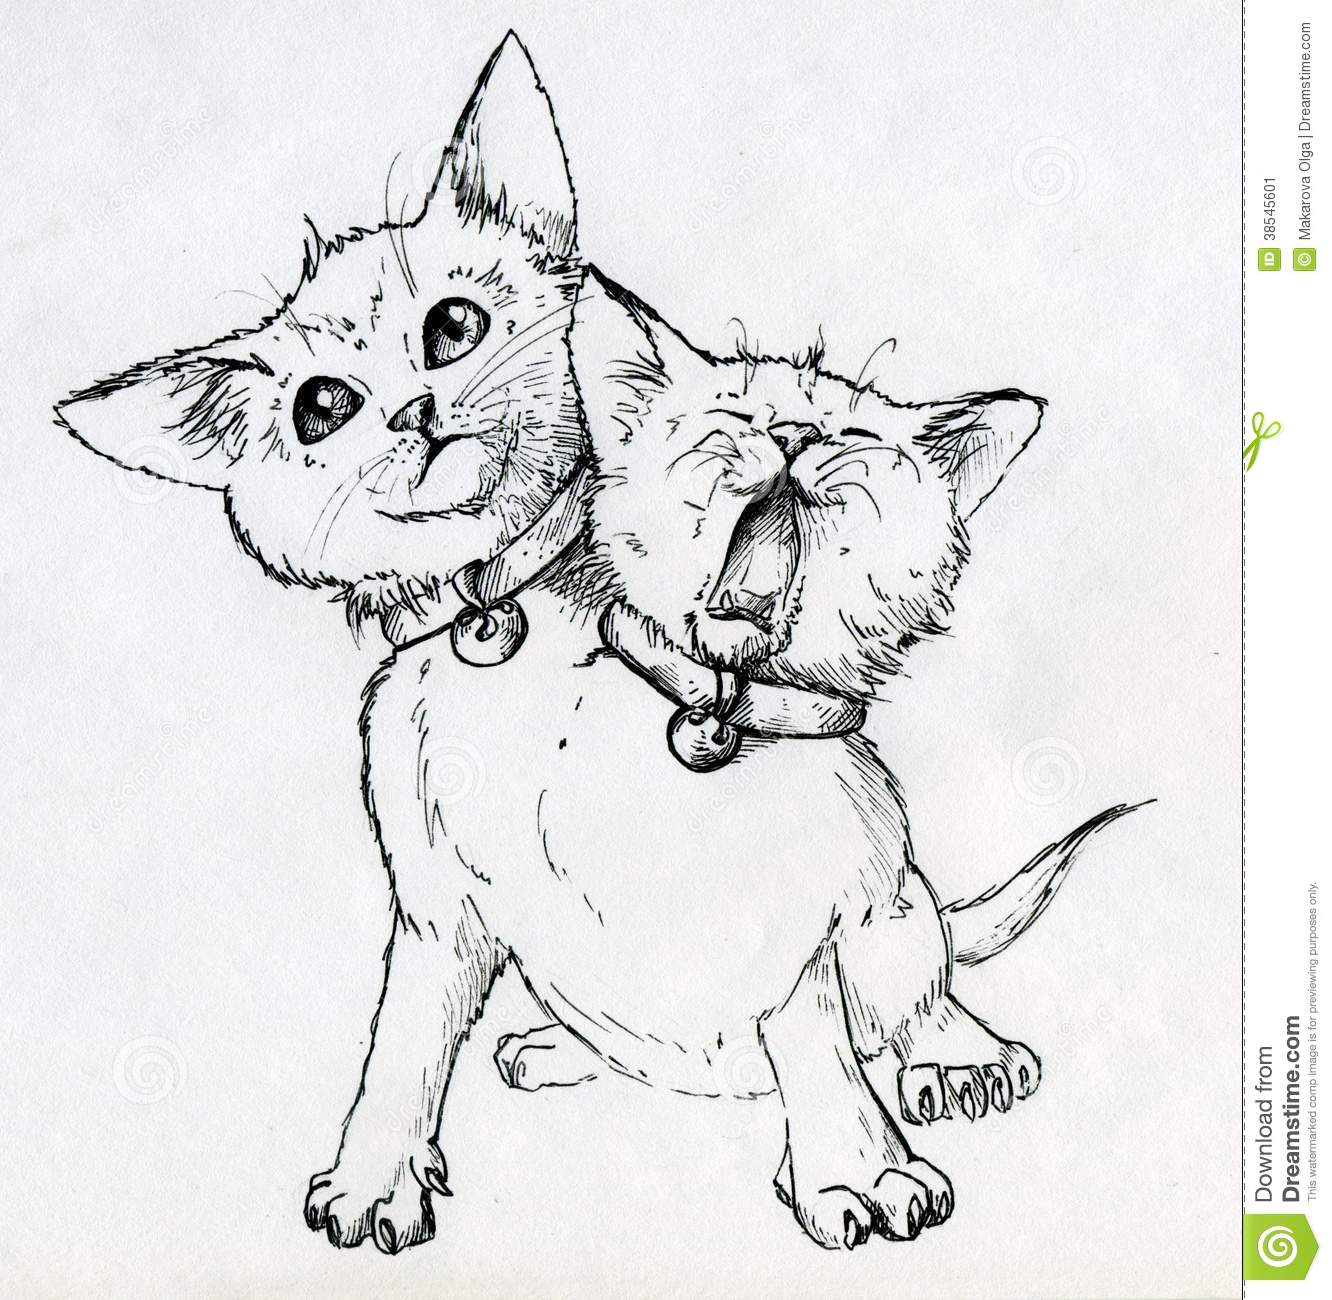 ... Very cute little pet wearing two collars with bells. Ink drawn sketch